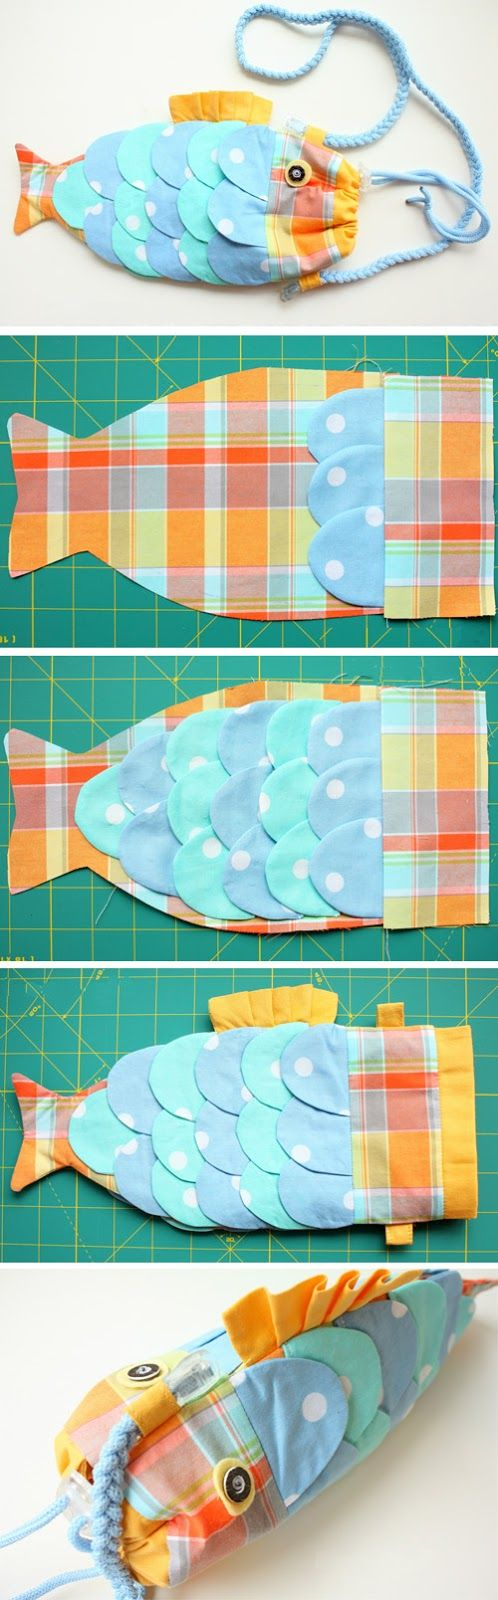 Cute Fish Handbag for Kids. DIY Tutorial in Pictures.  http://www.handmadiya.com/2015/10/fish-bag-tutorial.html